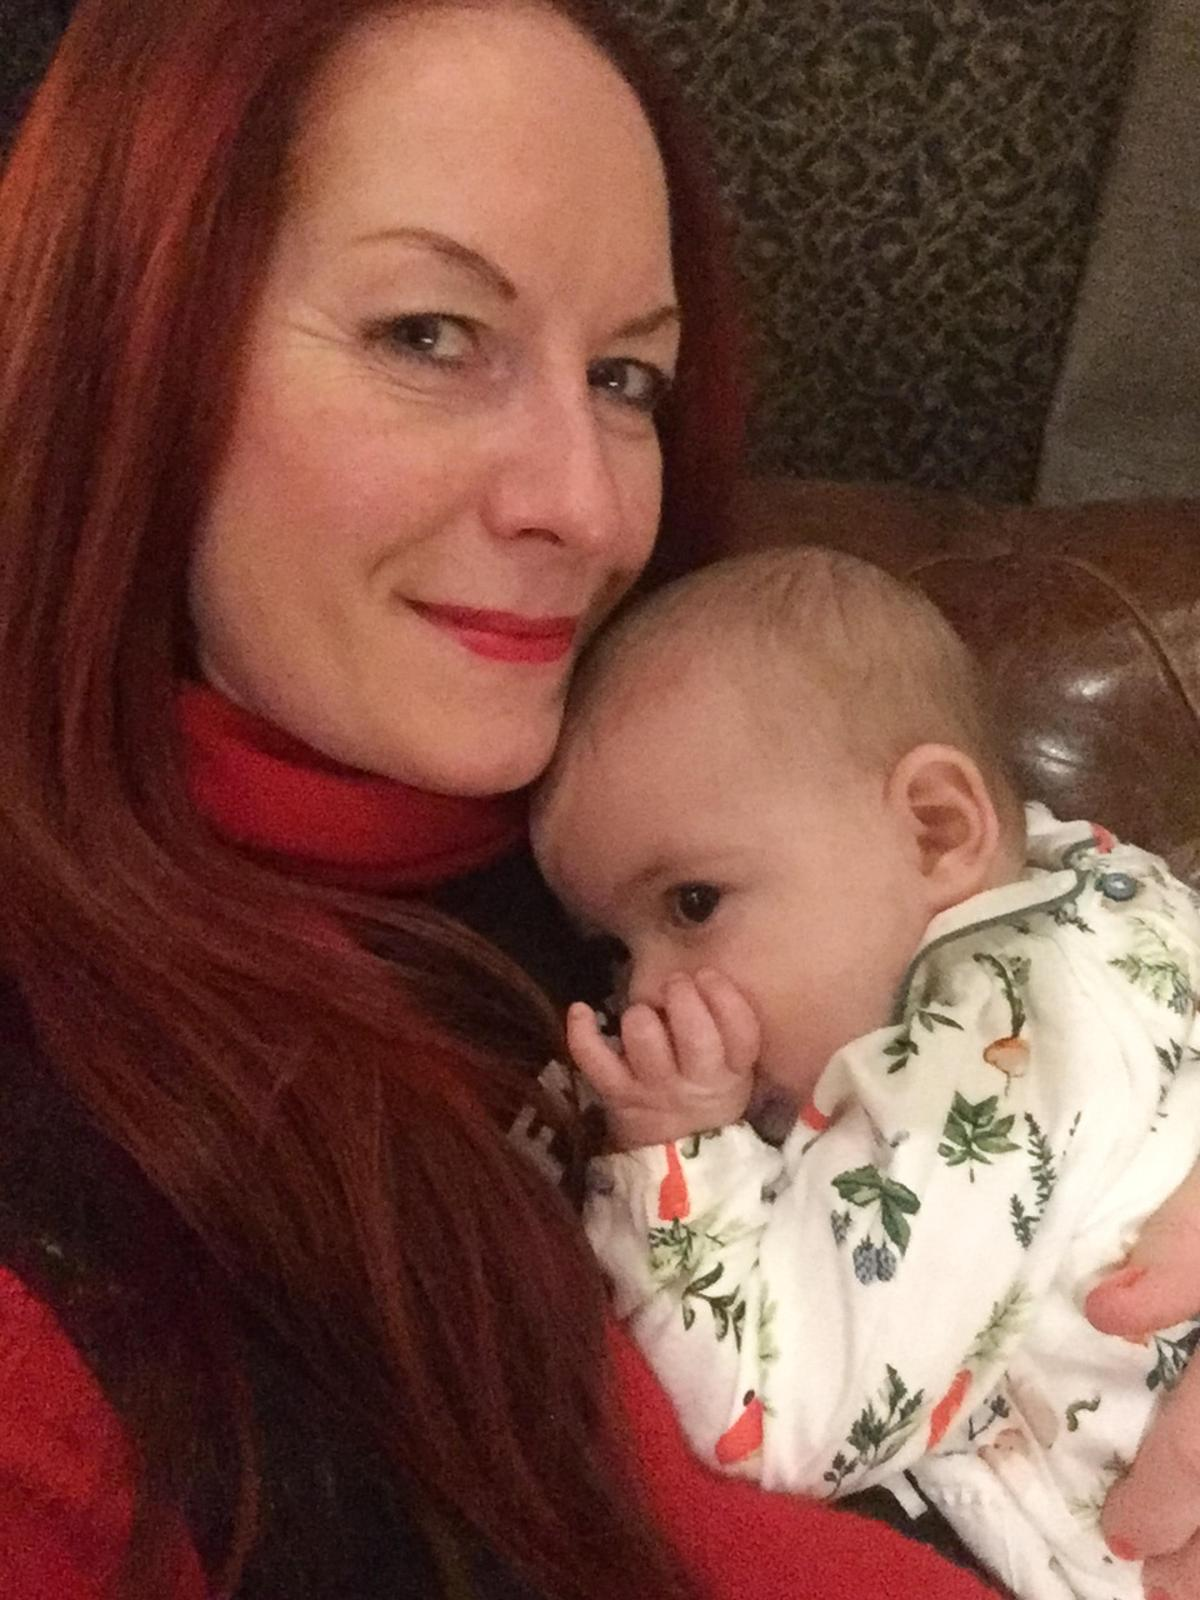 Lisa with baby Izobel, now 17 months old